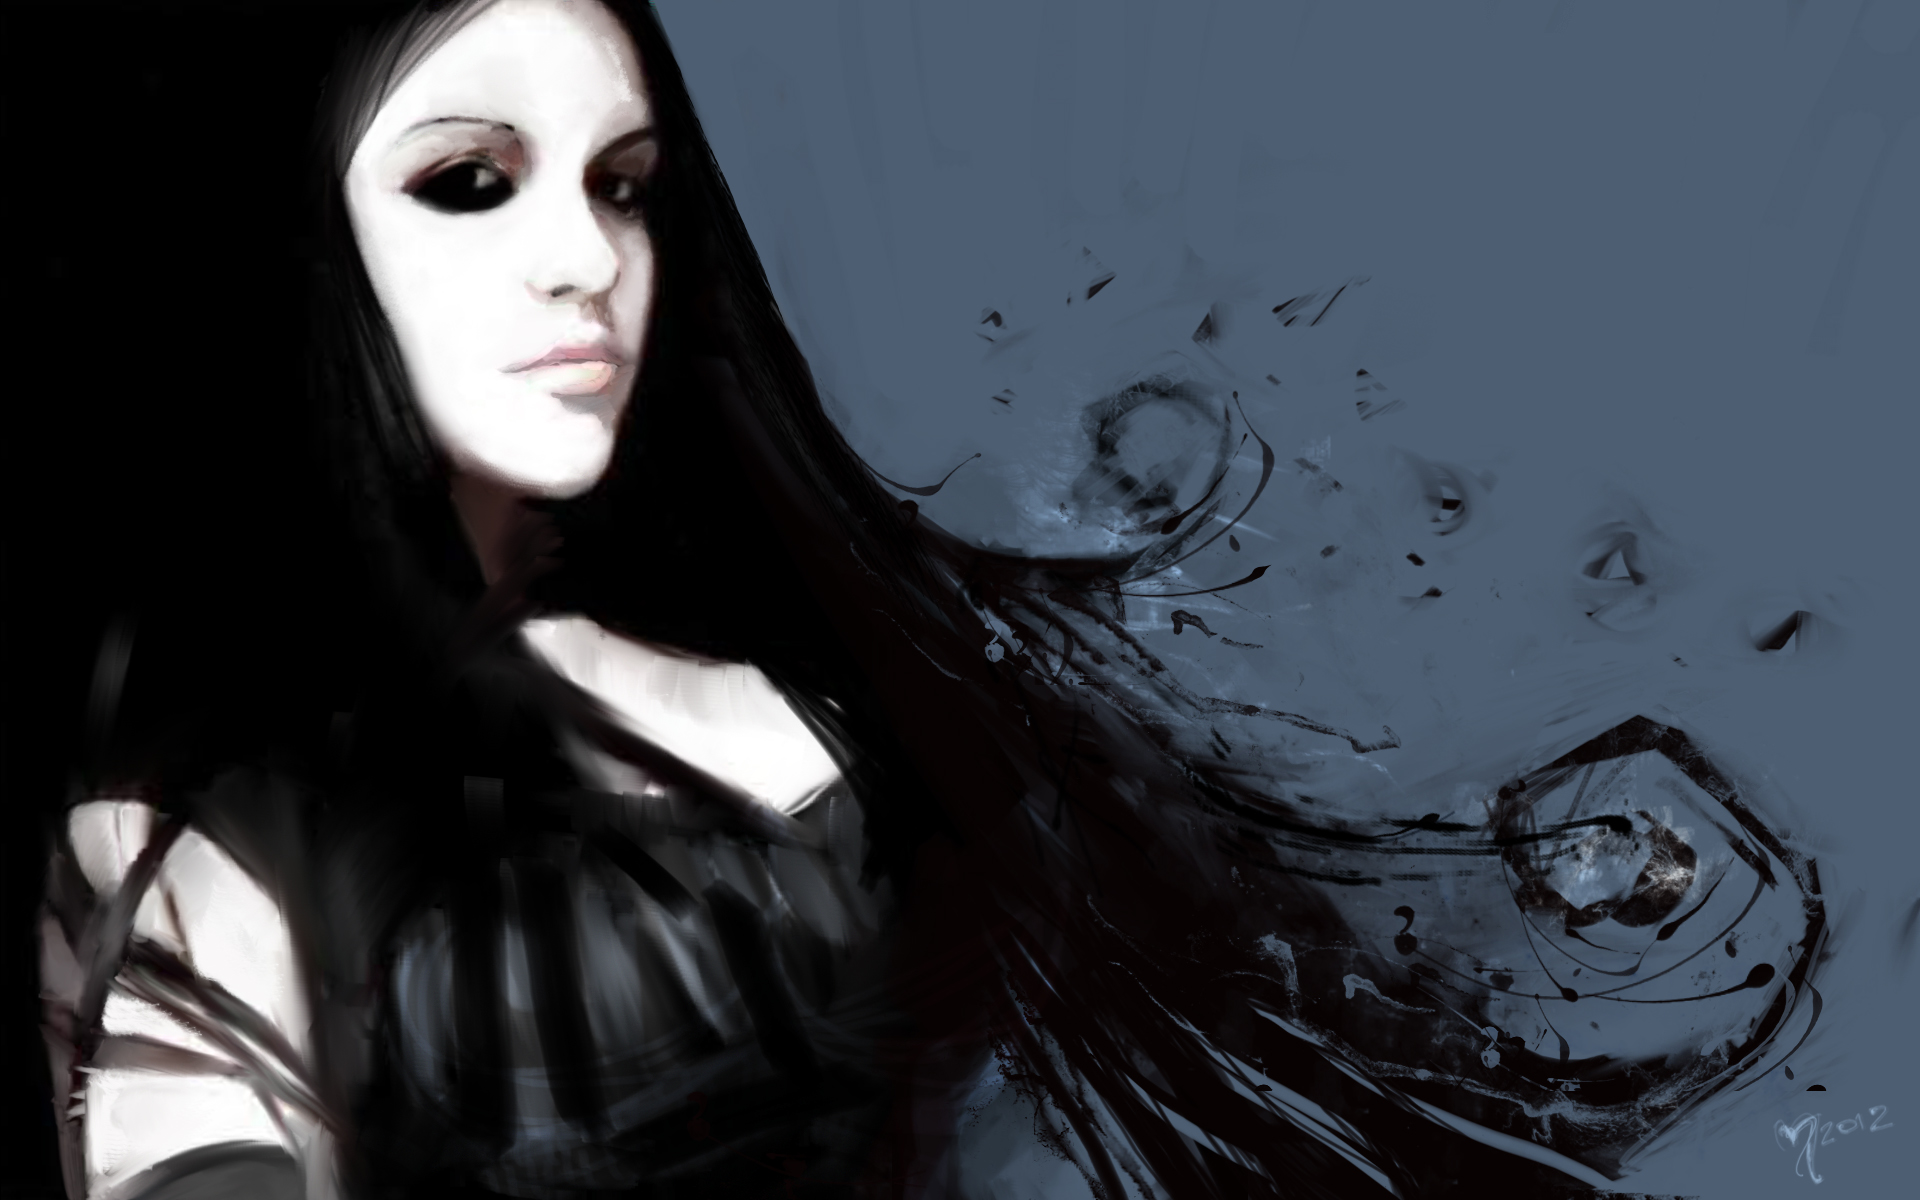 Goth Girl Wallpaper 1440x2960 Kyrene 1920x1200 Full Hd Wallpaper And Background Image